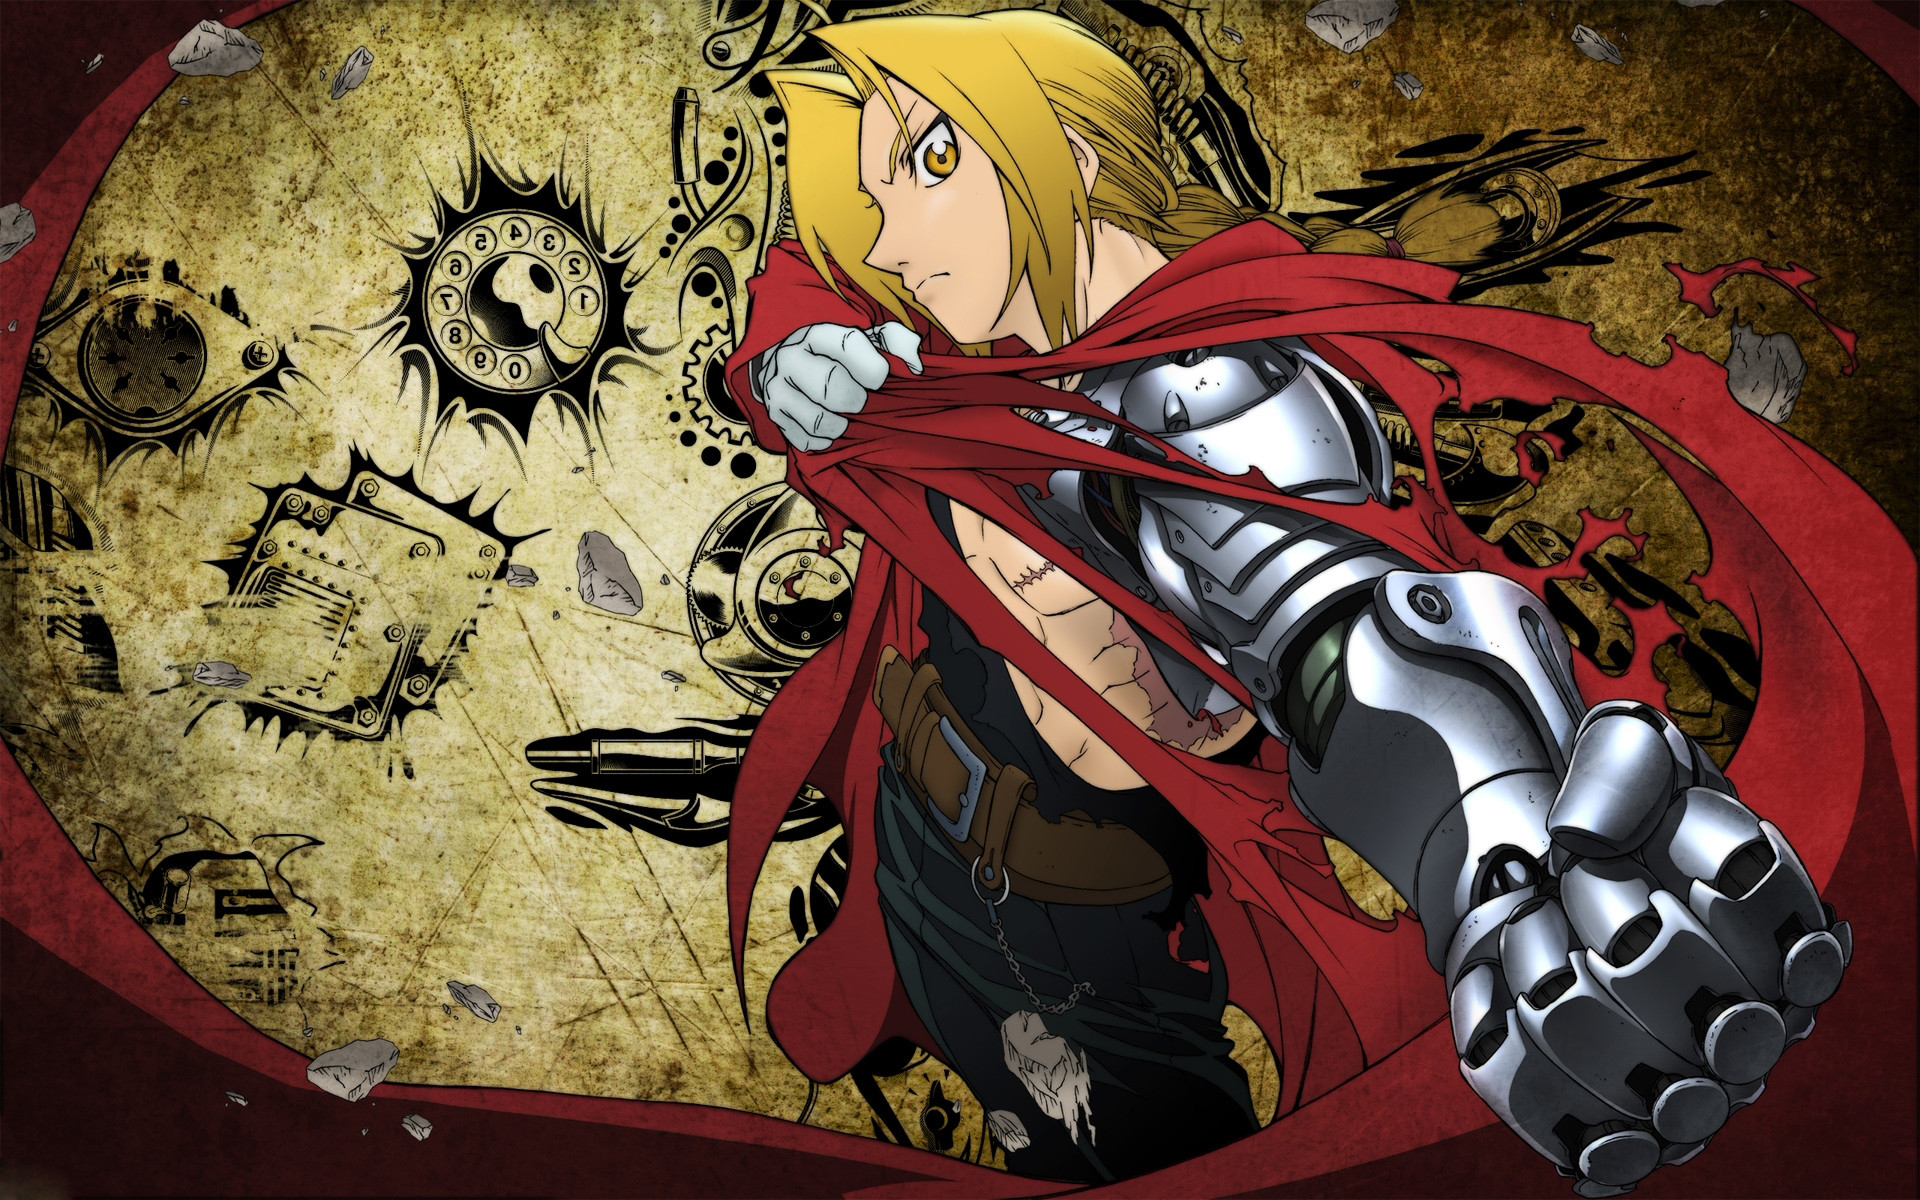 Res: 1920x1200, FullMetal Alchemist Wallpapers 17 - 1920 X 1200